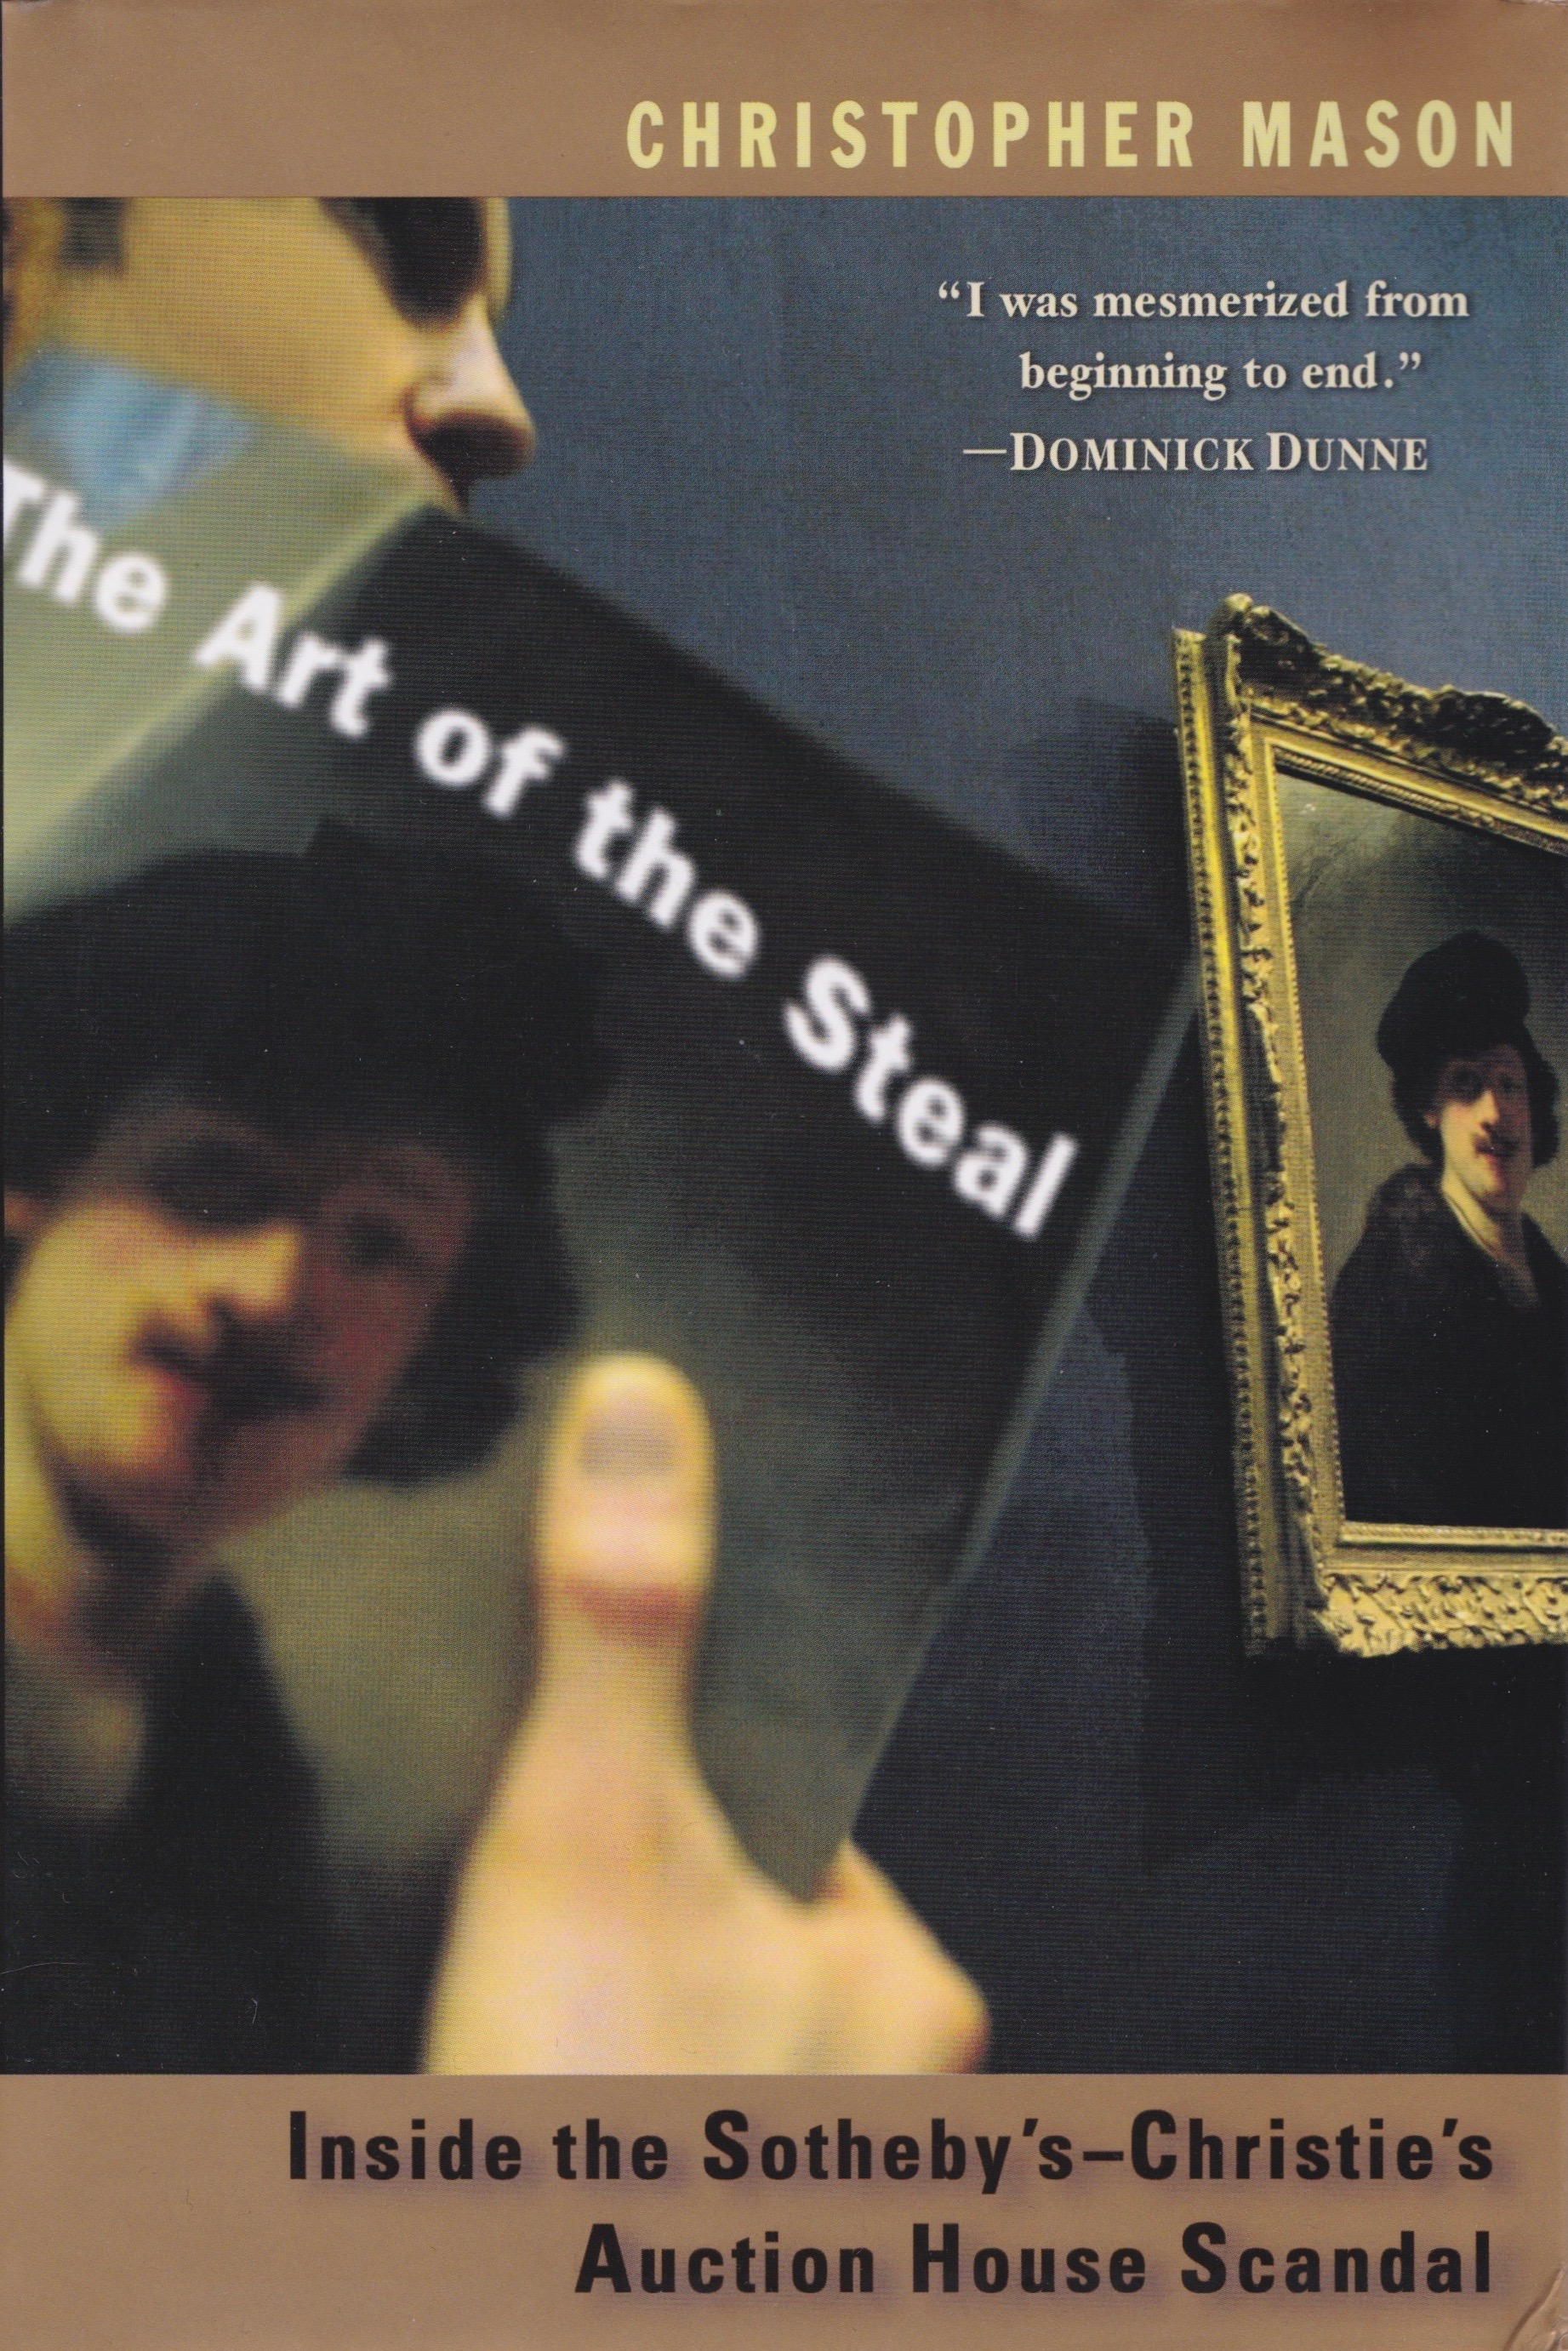 "The Art of the Steal: Inside the Sotheby's-Christies Auction House Scandal by Christopher Mason. ""I was mesmerized from beginning to end."" — Dominick Dunne"